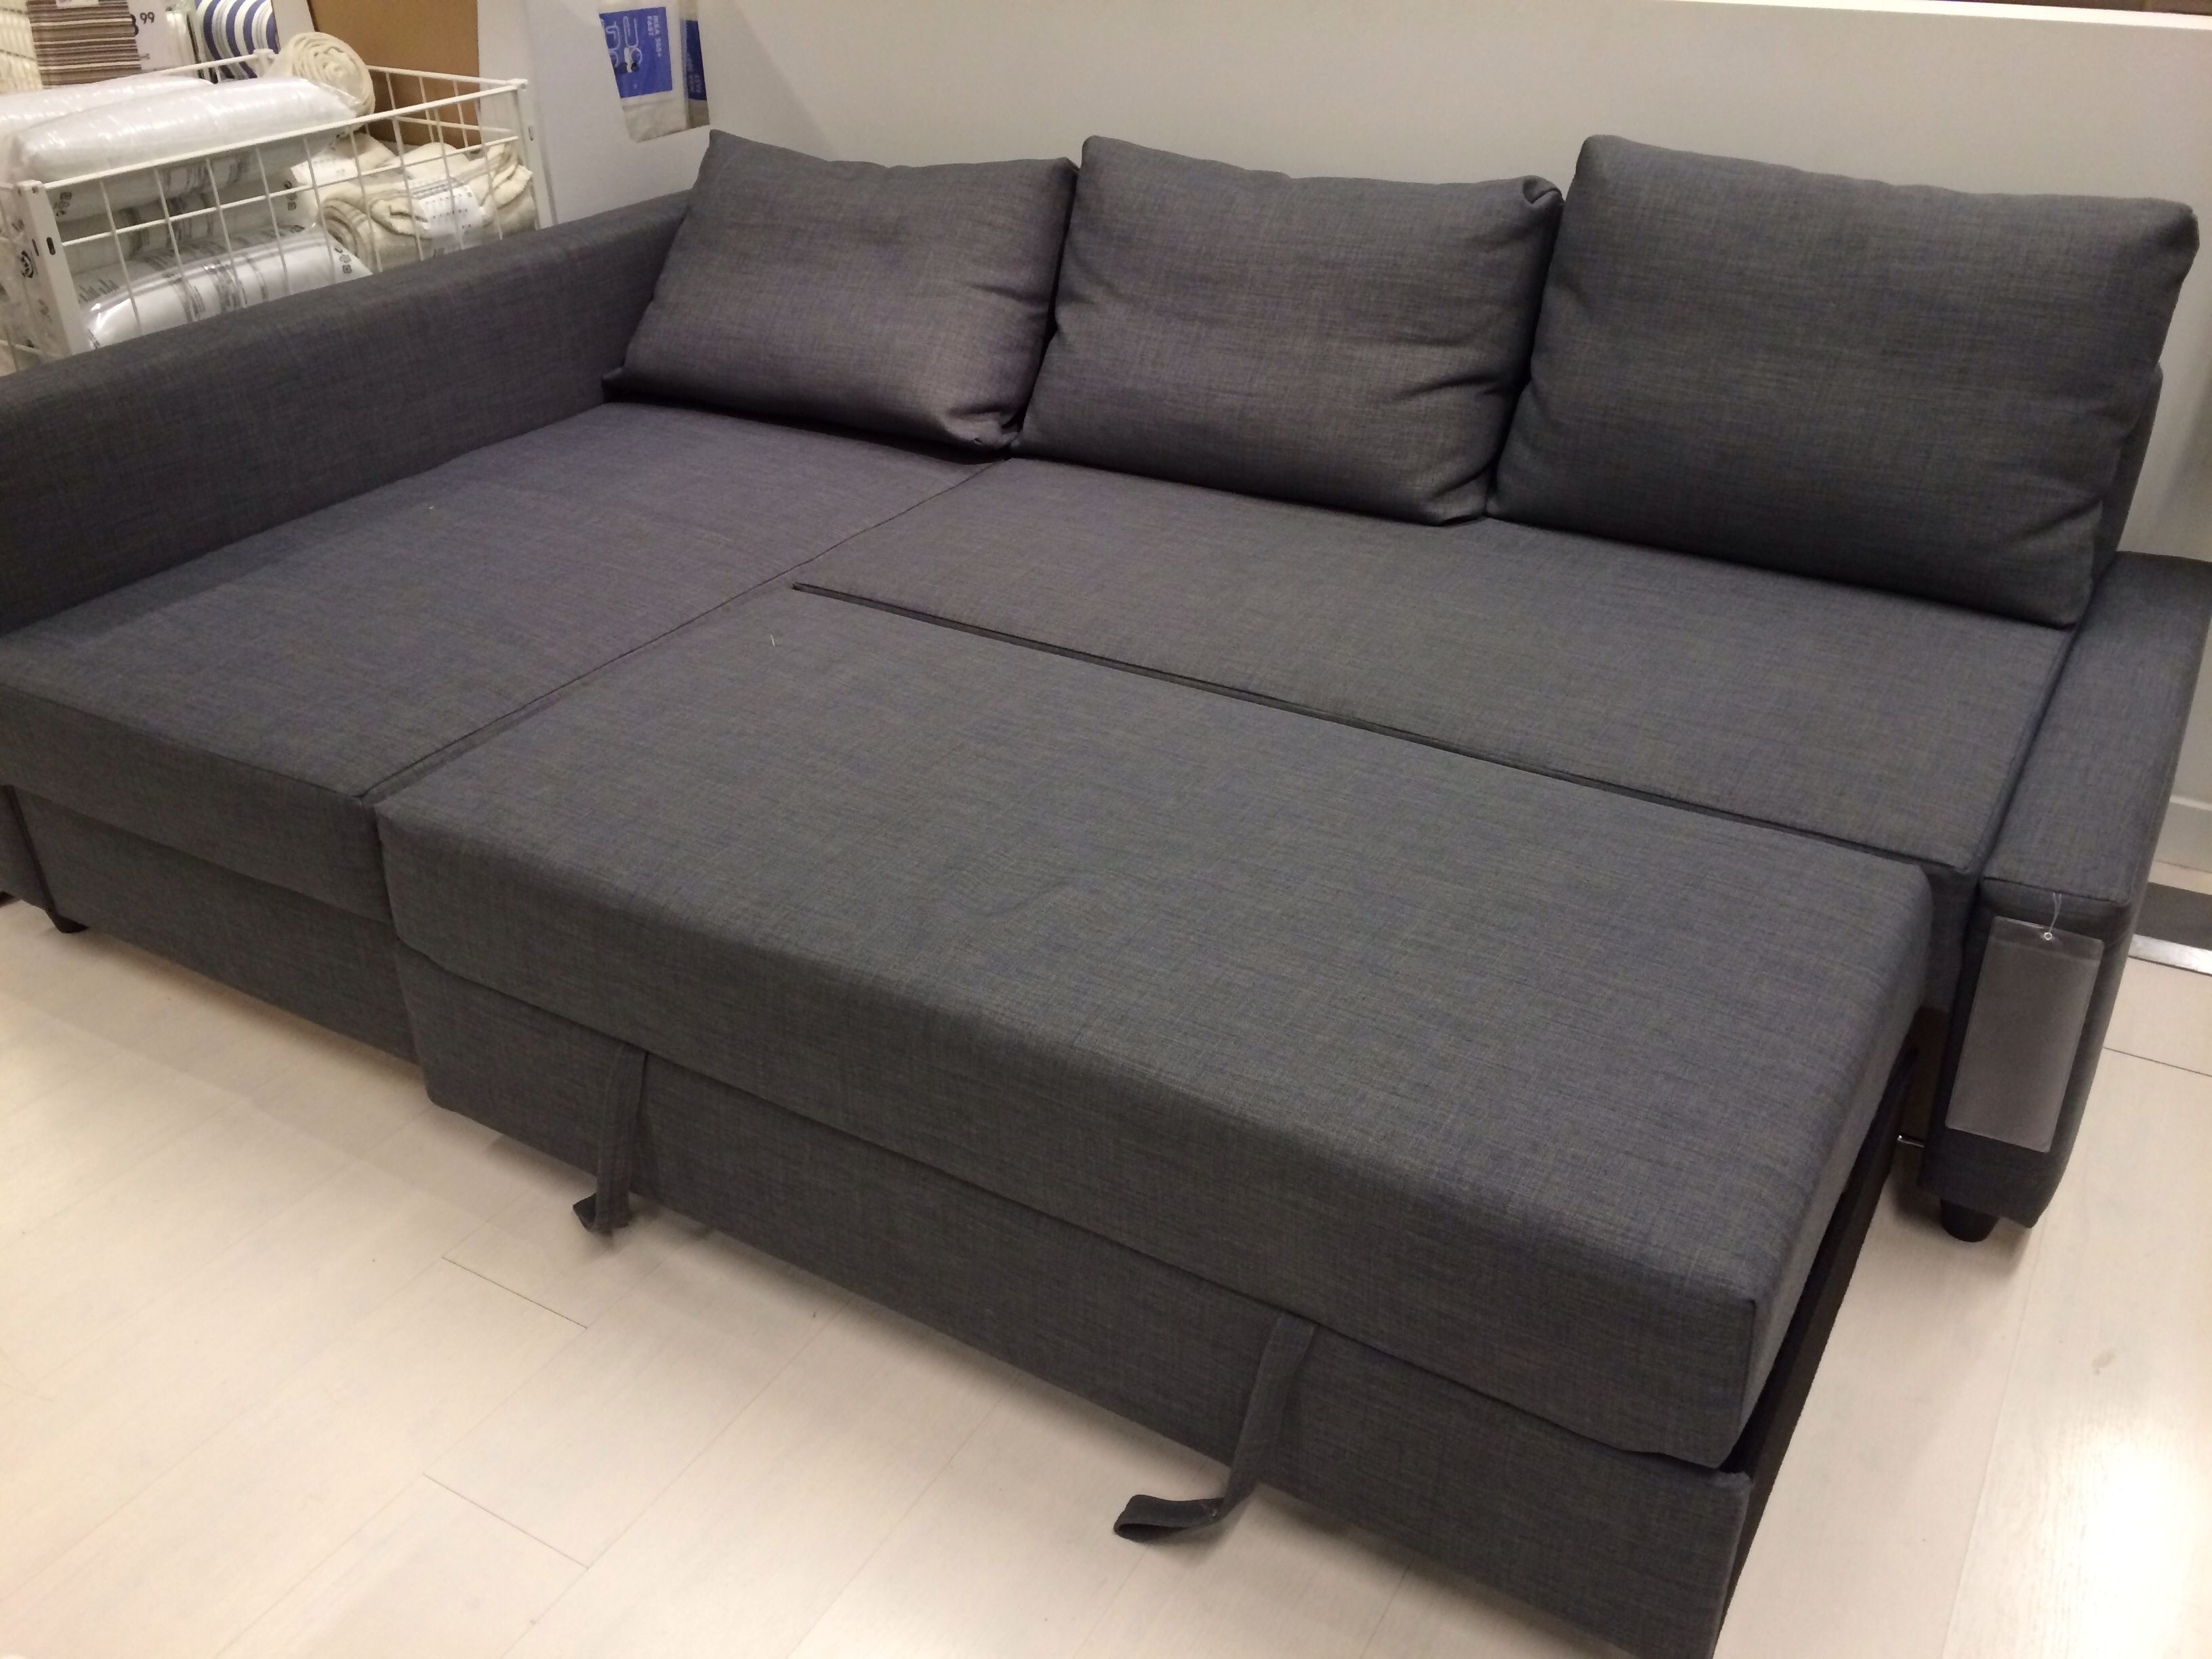 FRIHETEN Corner sofa-bed (Skiftebo dark grey) - IKEA | For ...